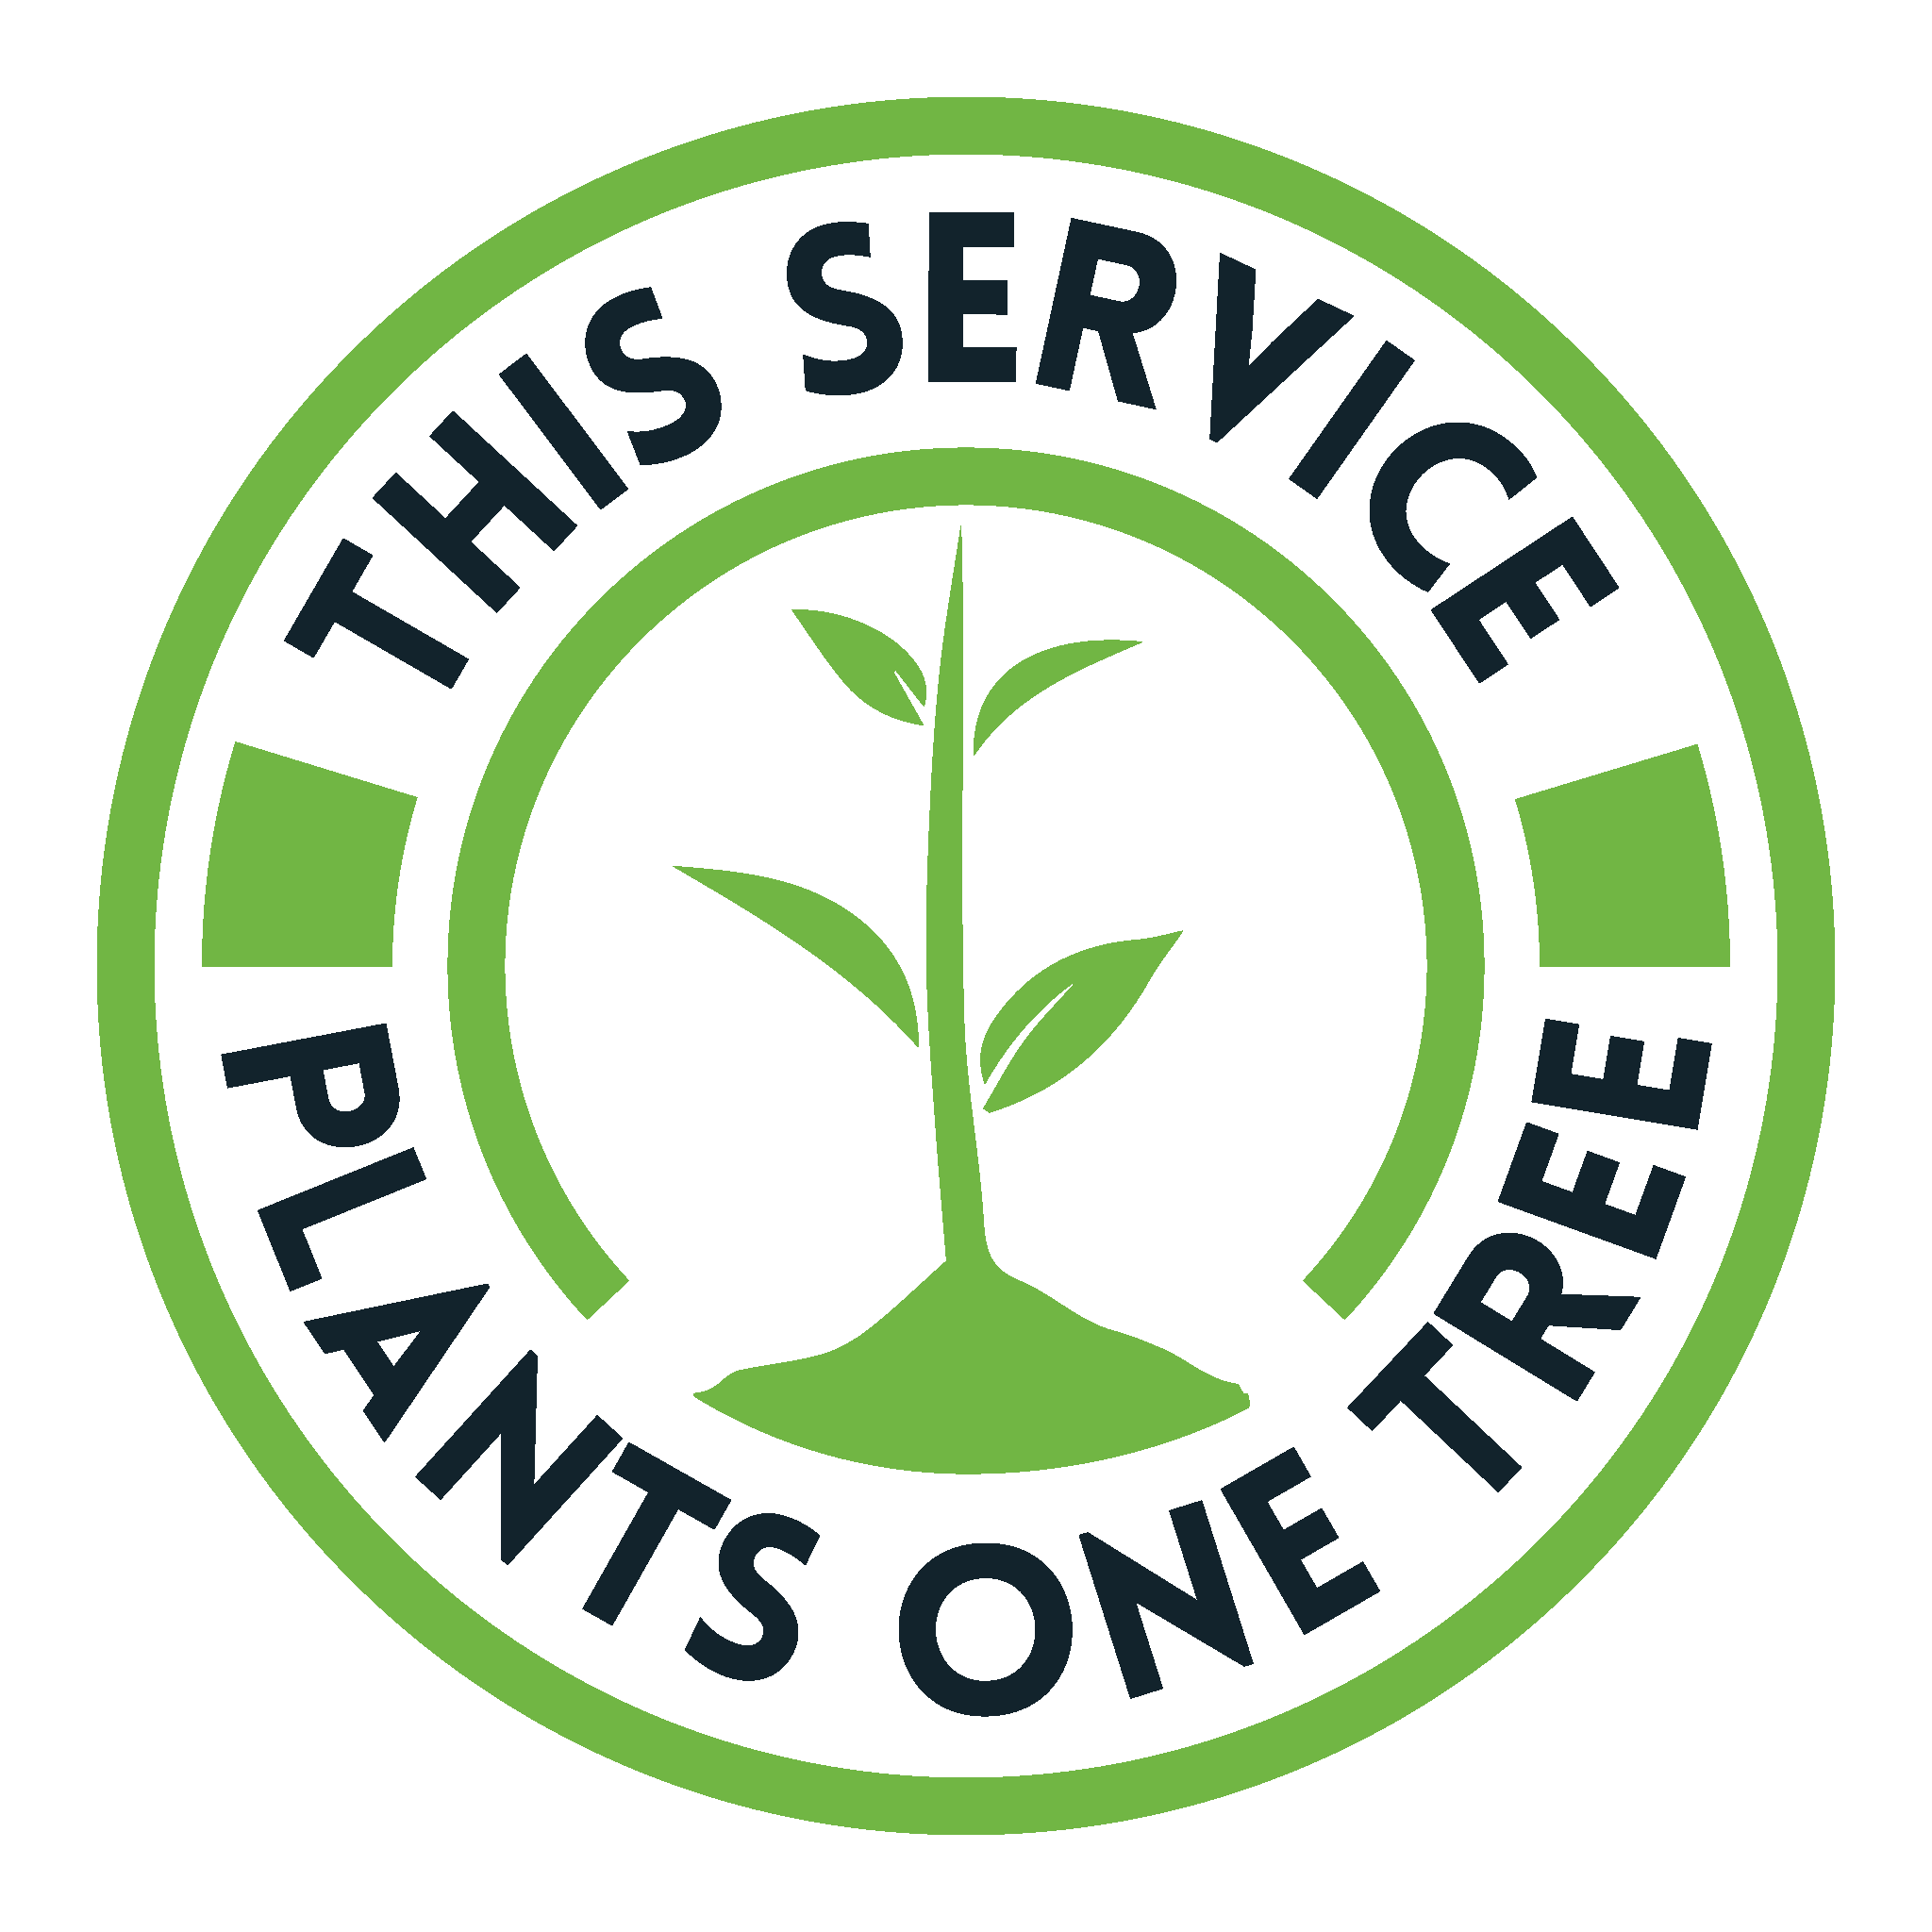 one-tree-planted-stamp-cleaning-services